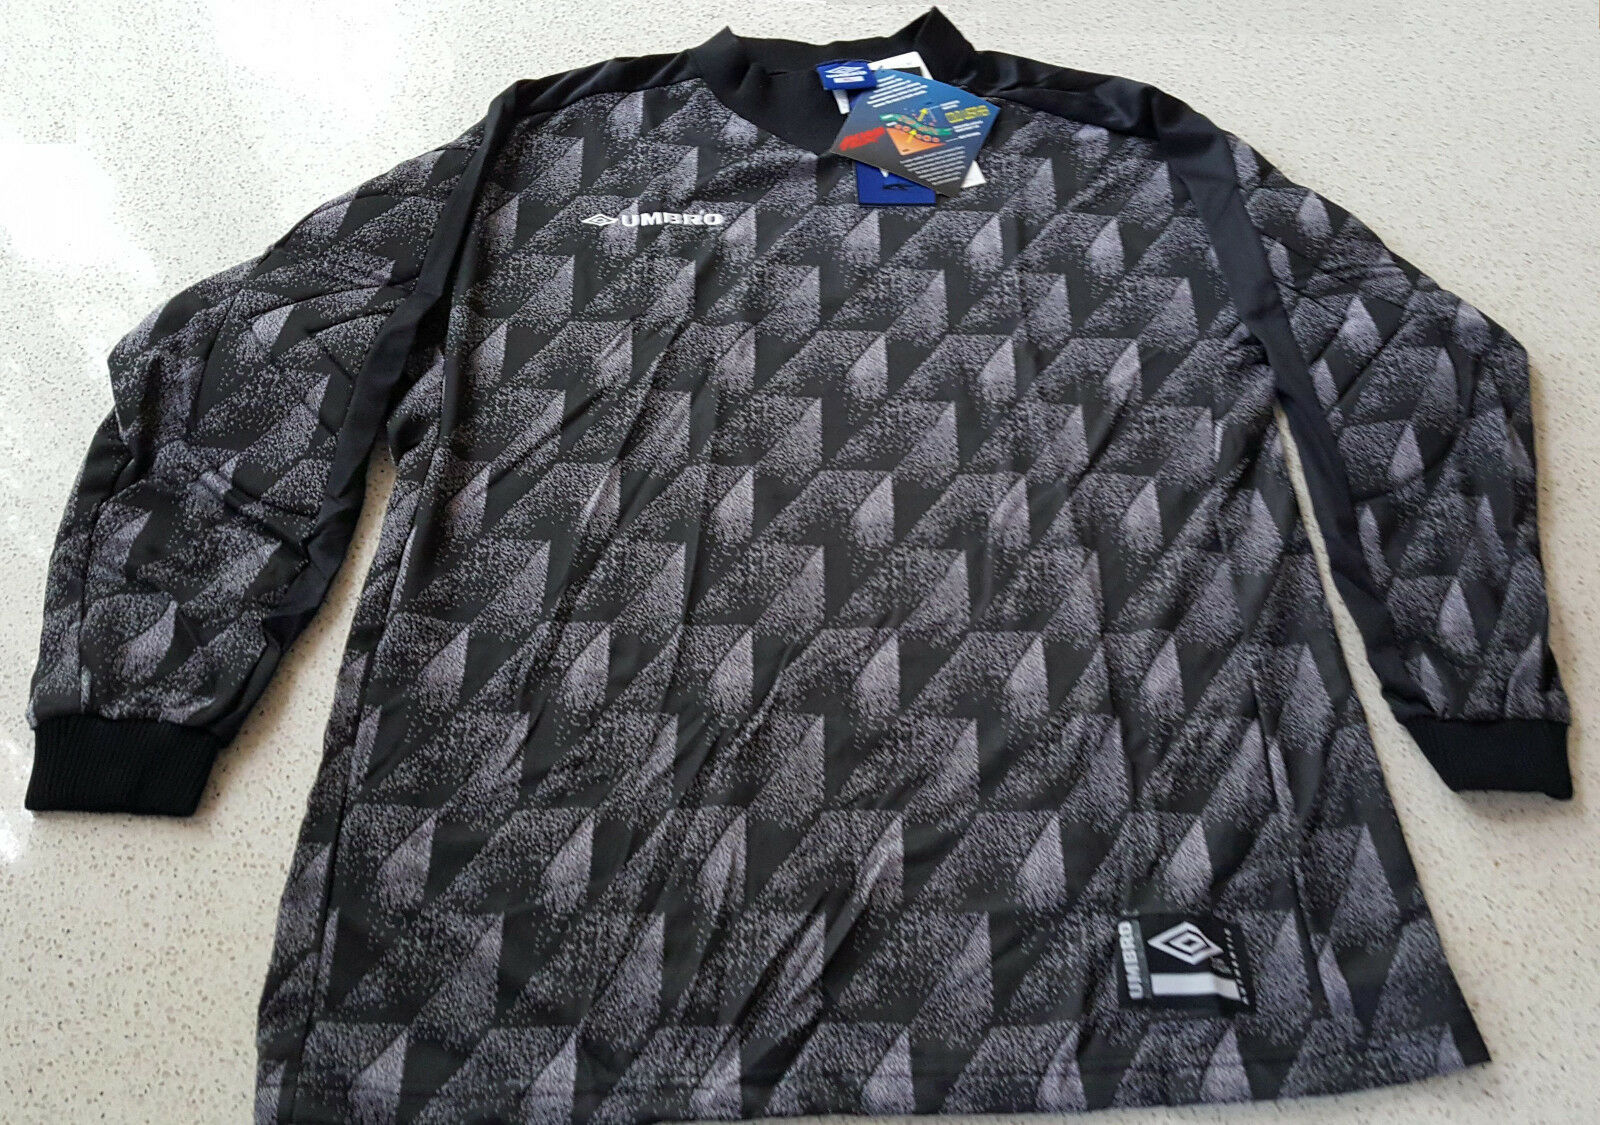 ... UPC 634378417841 product image for Umbro Goalkeeper Jersey Retro  Vintage 90s Padded Adult Xl  247435fbe